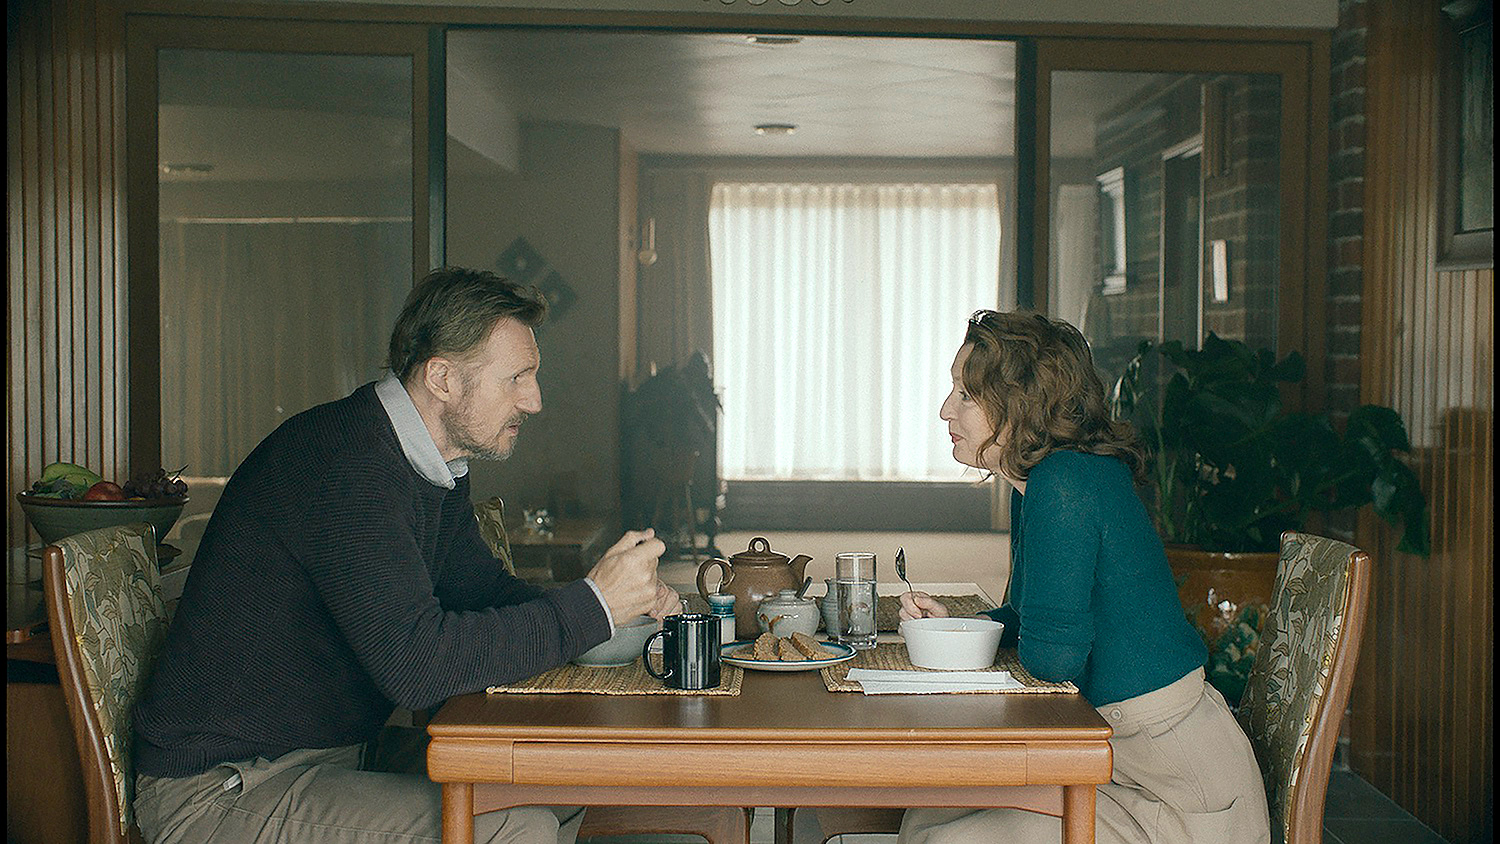 Liam Neeson (left) and Lesley Manville (right) star in ORDINARY LOVE,